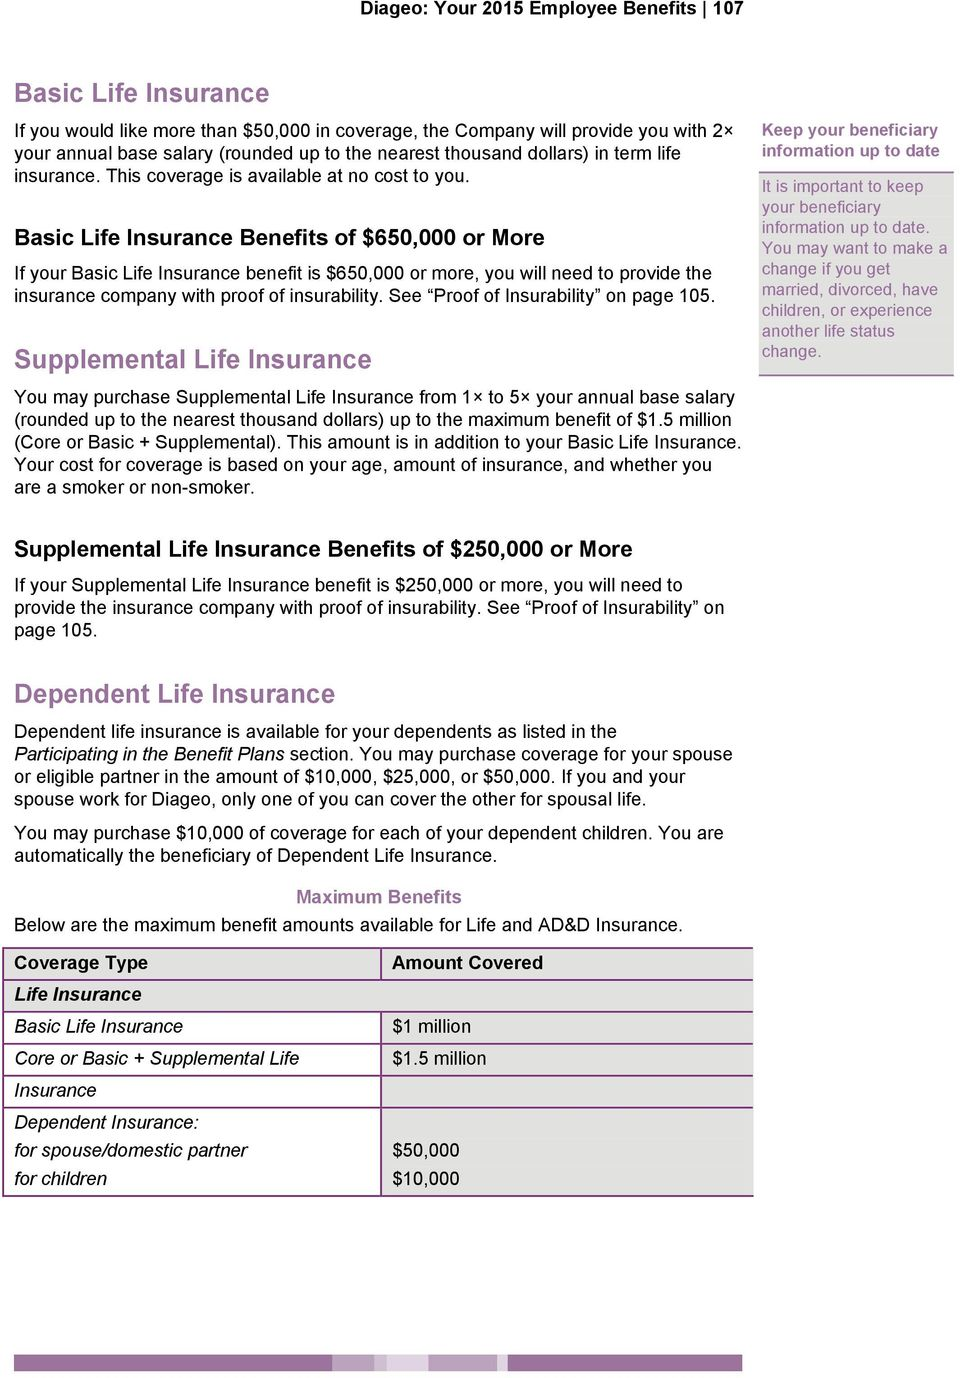 Basic Life Insurance Benefits of $650,000 or More If your Basic Life Insurance benefit is $650,000 or more, you will need to provide the insurance company with proof of insurability.